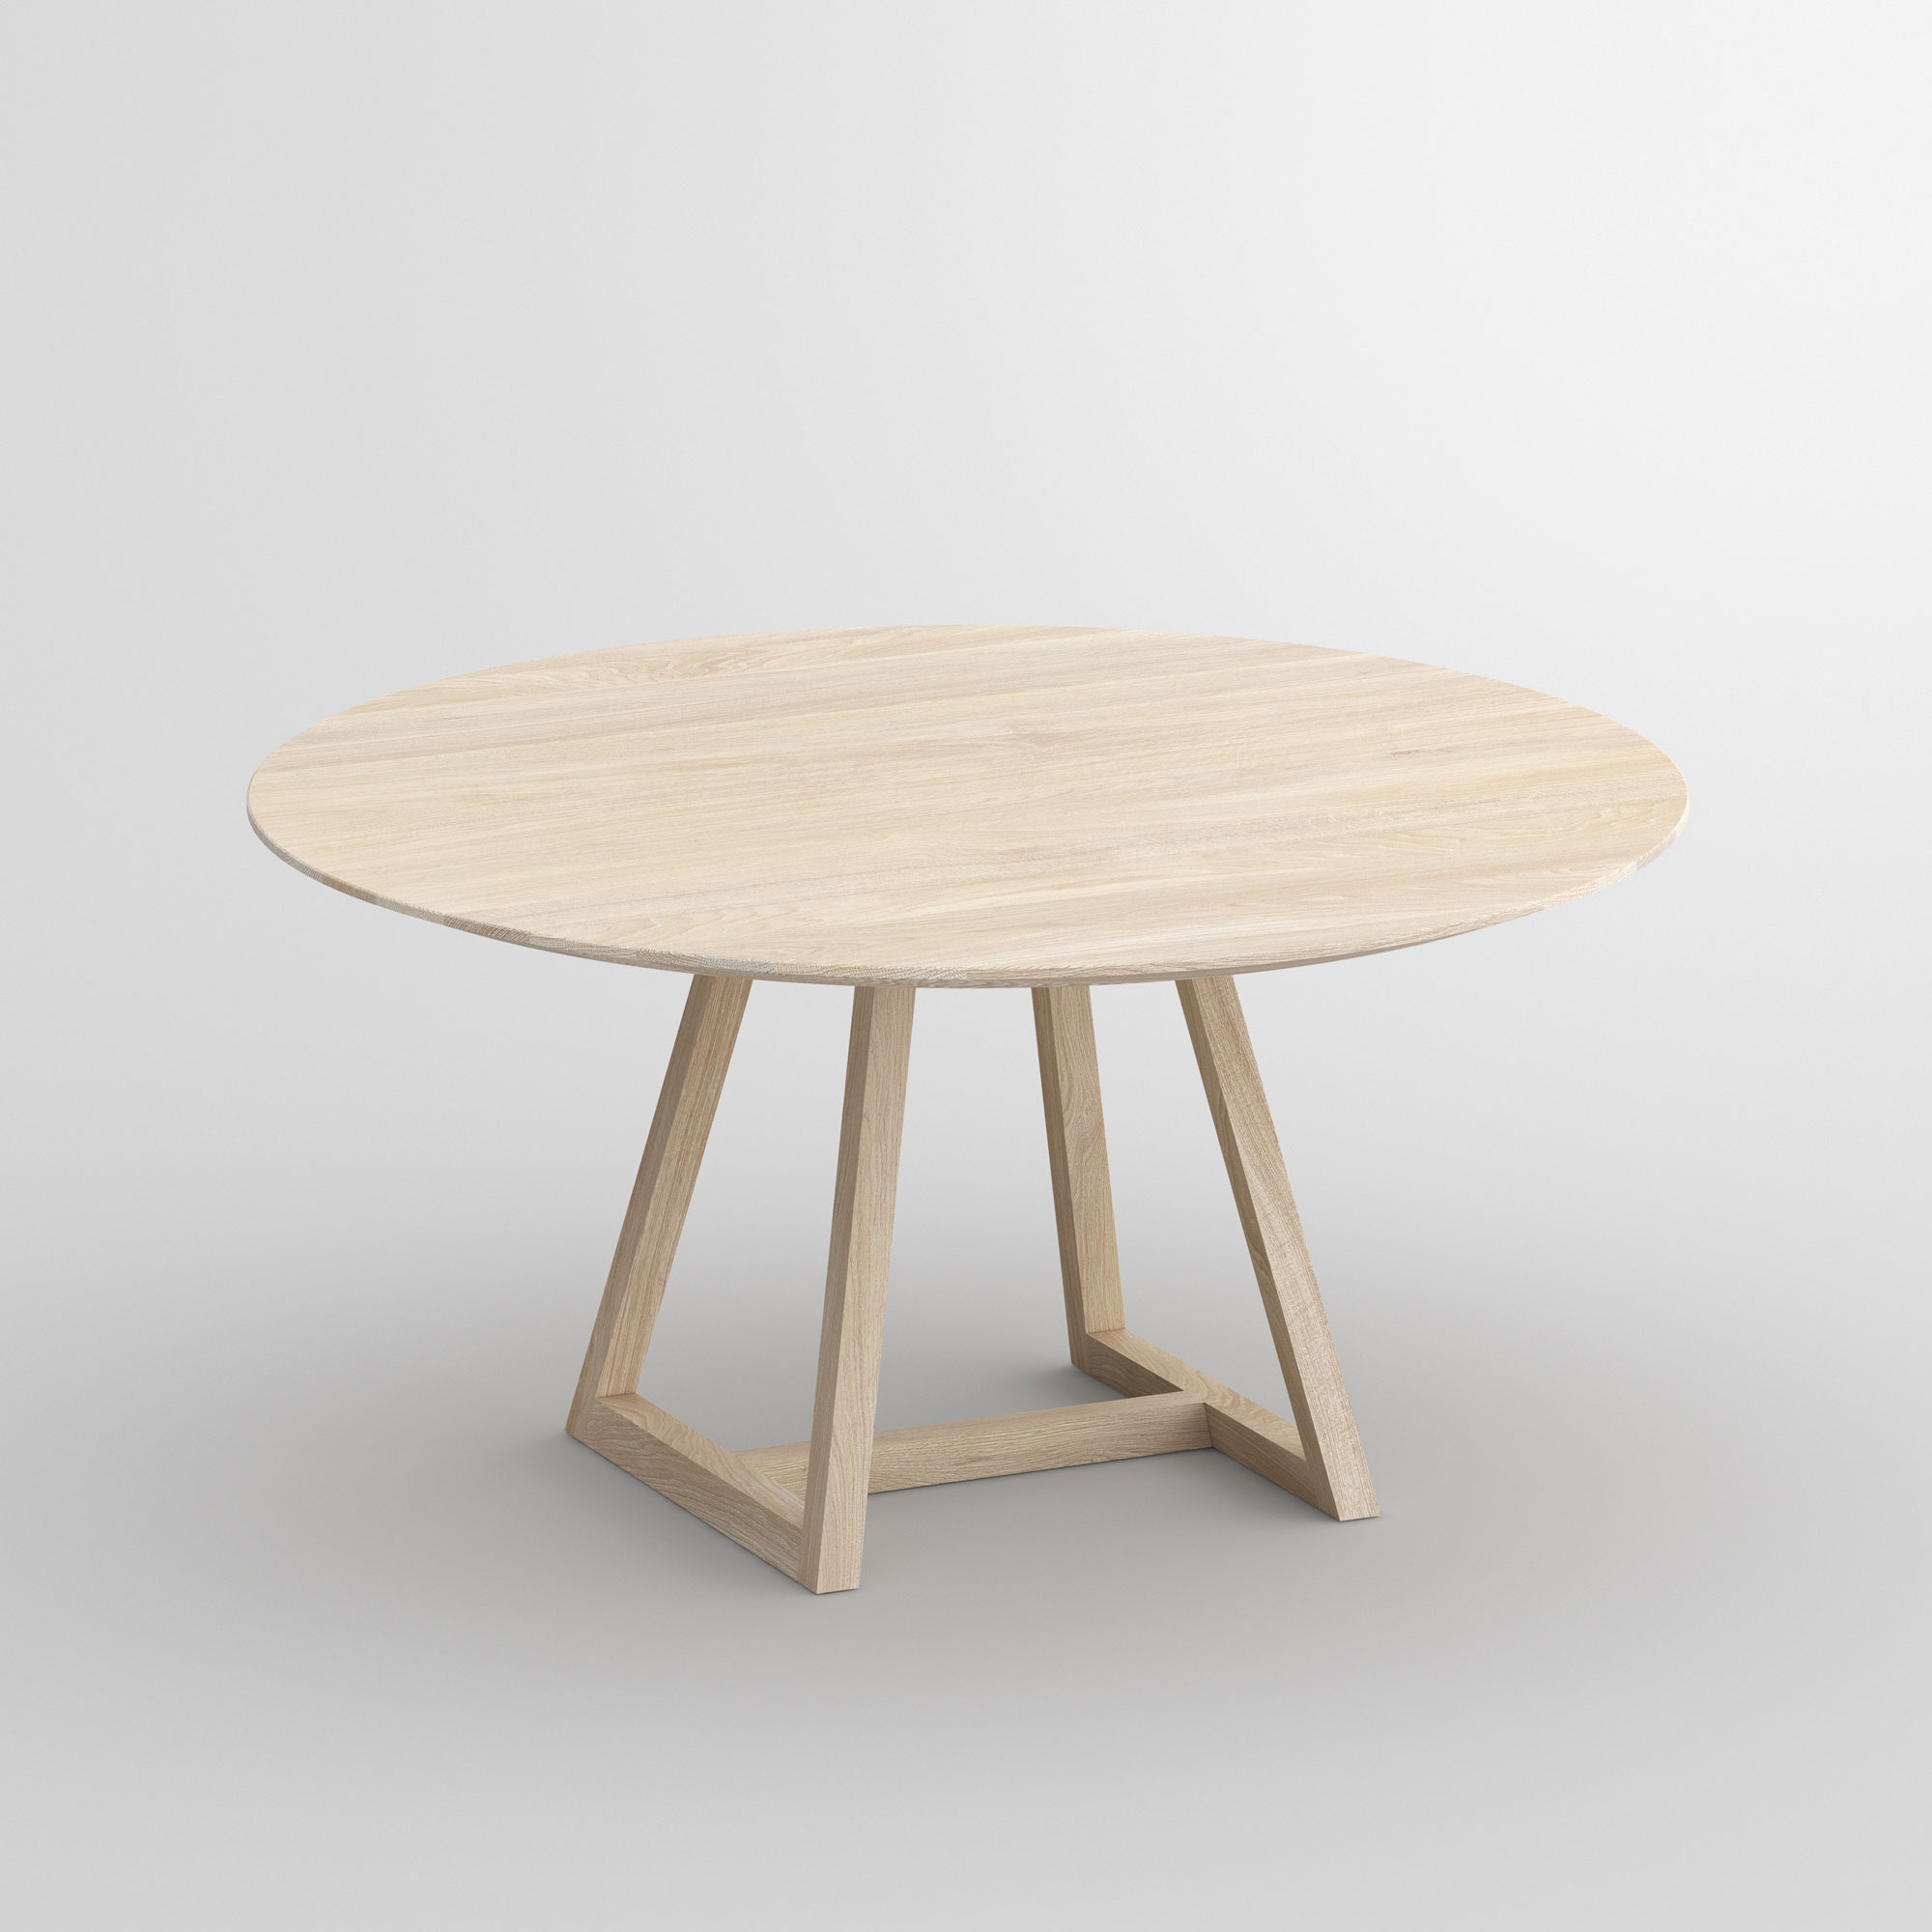 Round Table MARGO ROUND cam1 custom made in solid wood by vitamin design